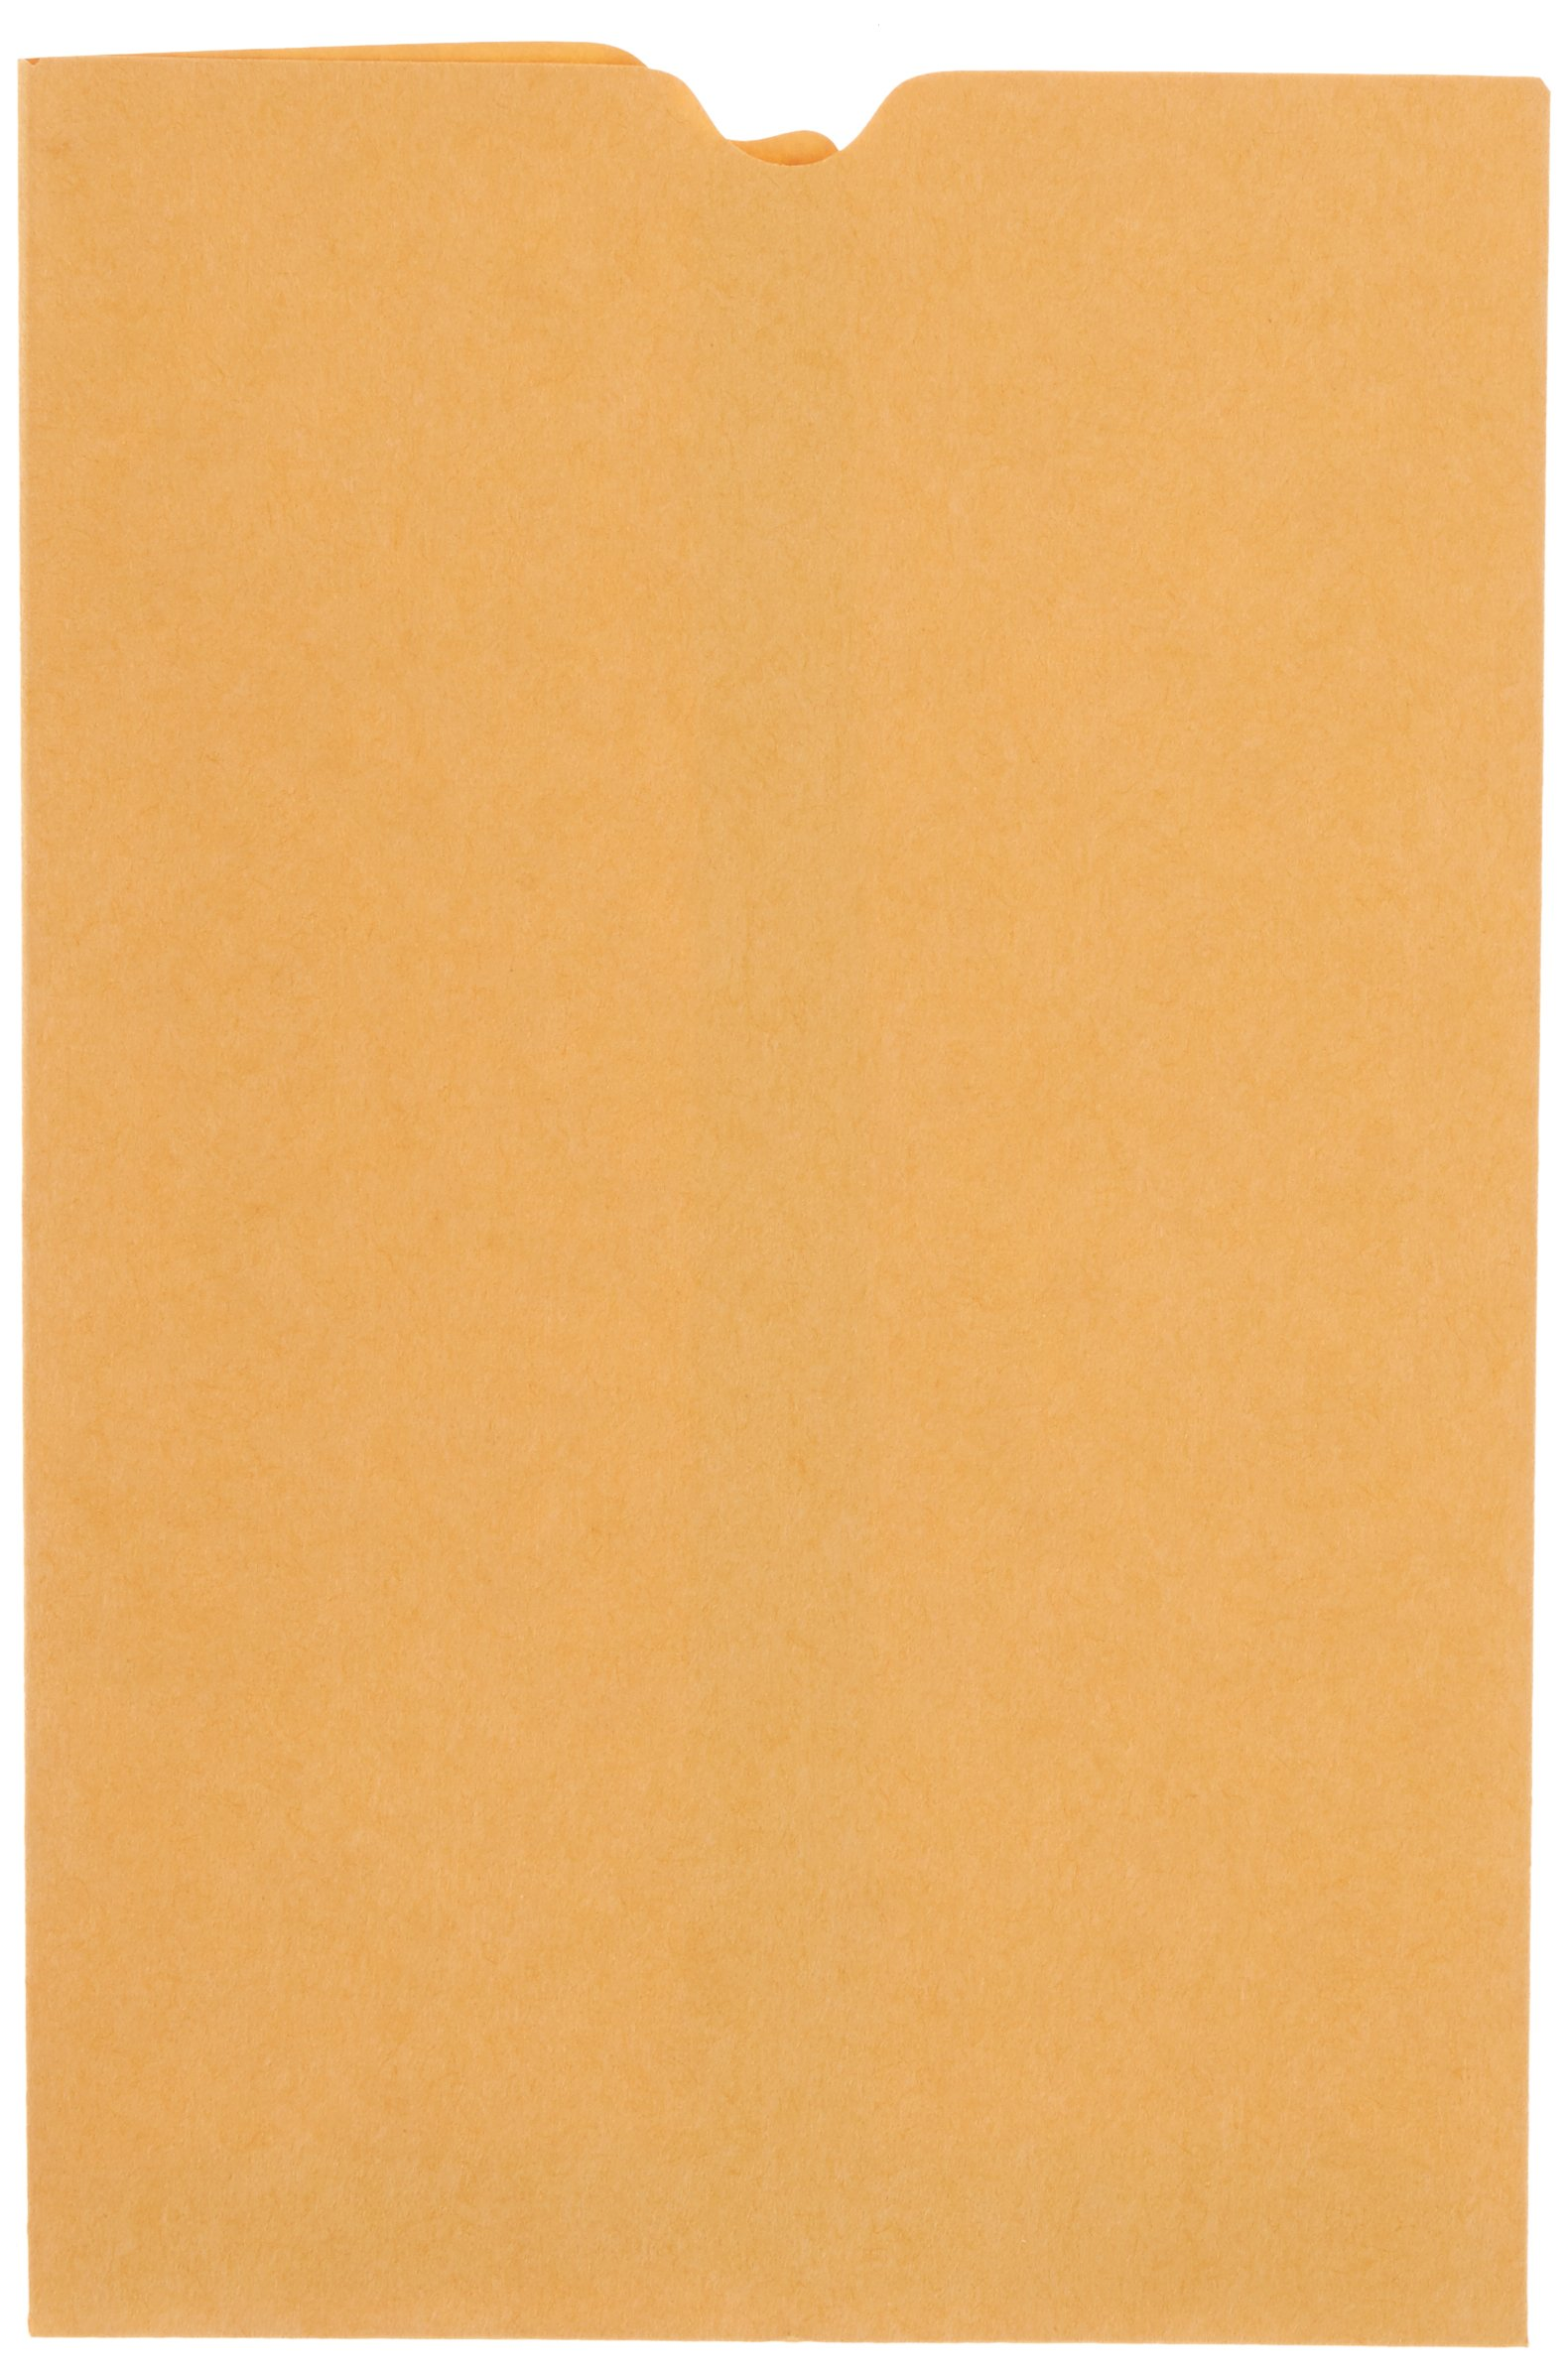 School Smart Report Card Envelope, 28 lb, 6 x 9 Inch, Kraft, Pack of 500 by School Smart